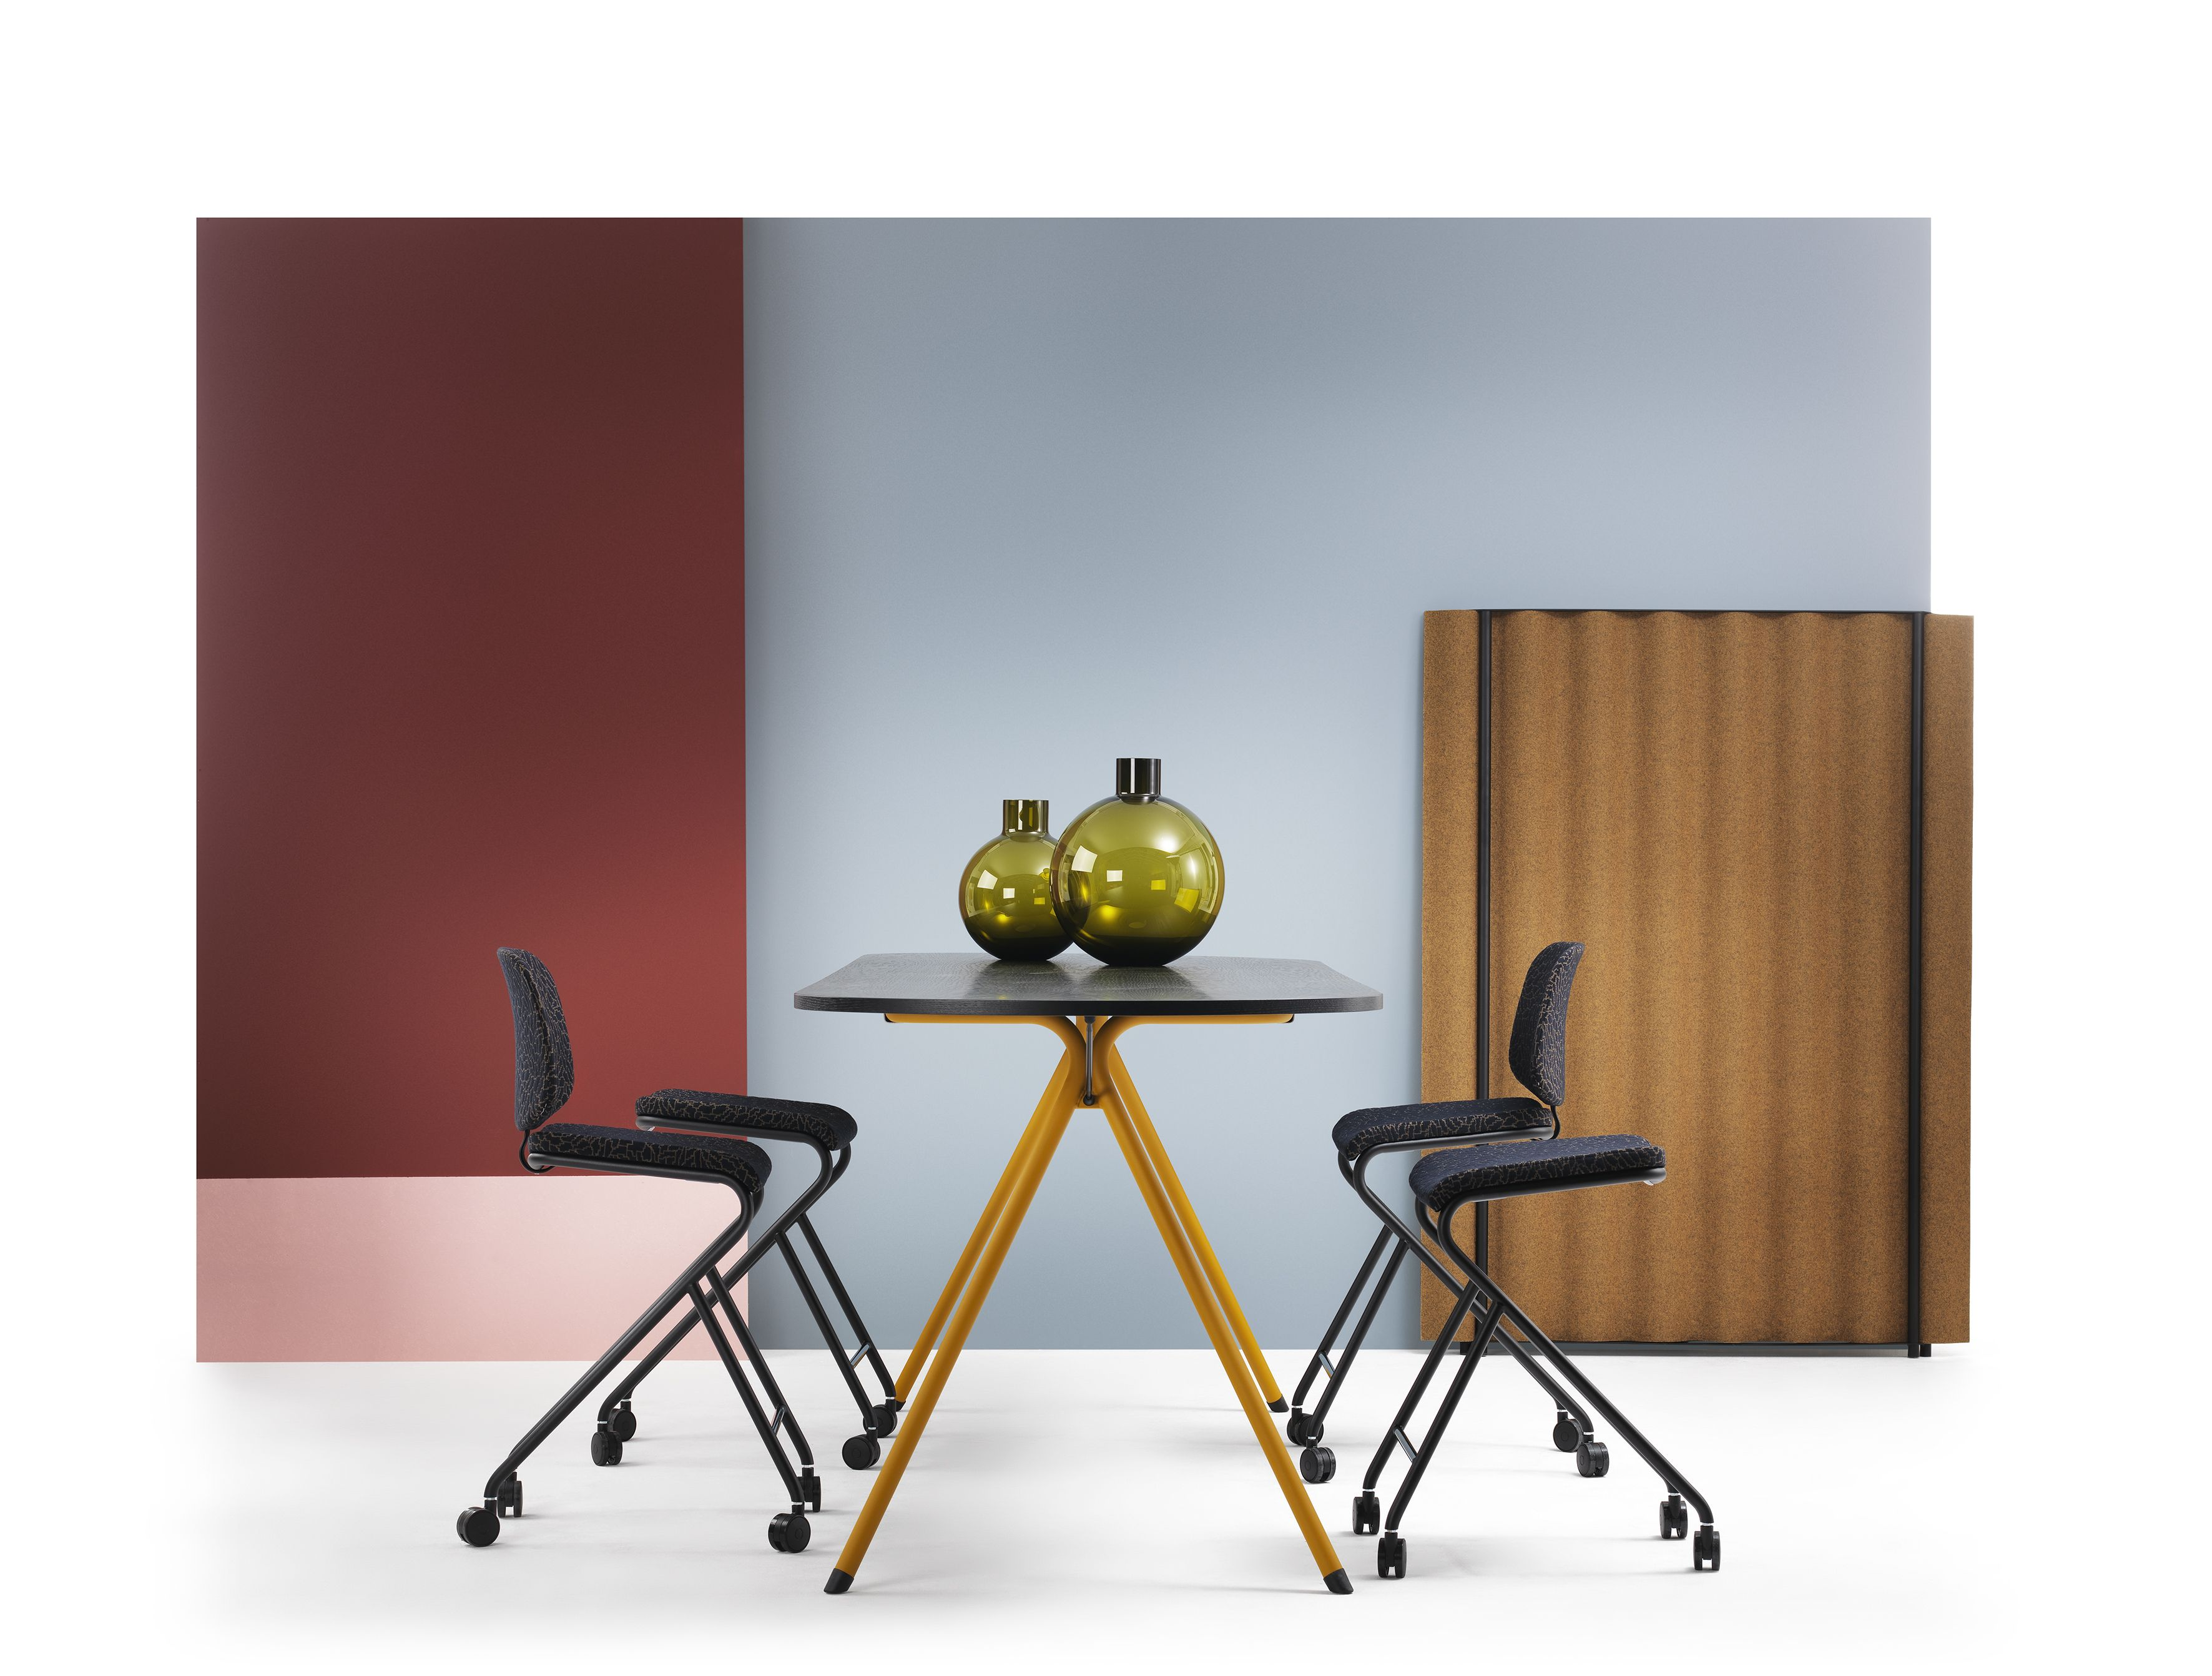 Lammhults S18 table& Add Move stools Lammhults Pinterest Stools, Architects and Interiors